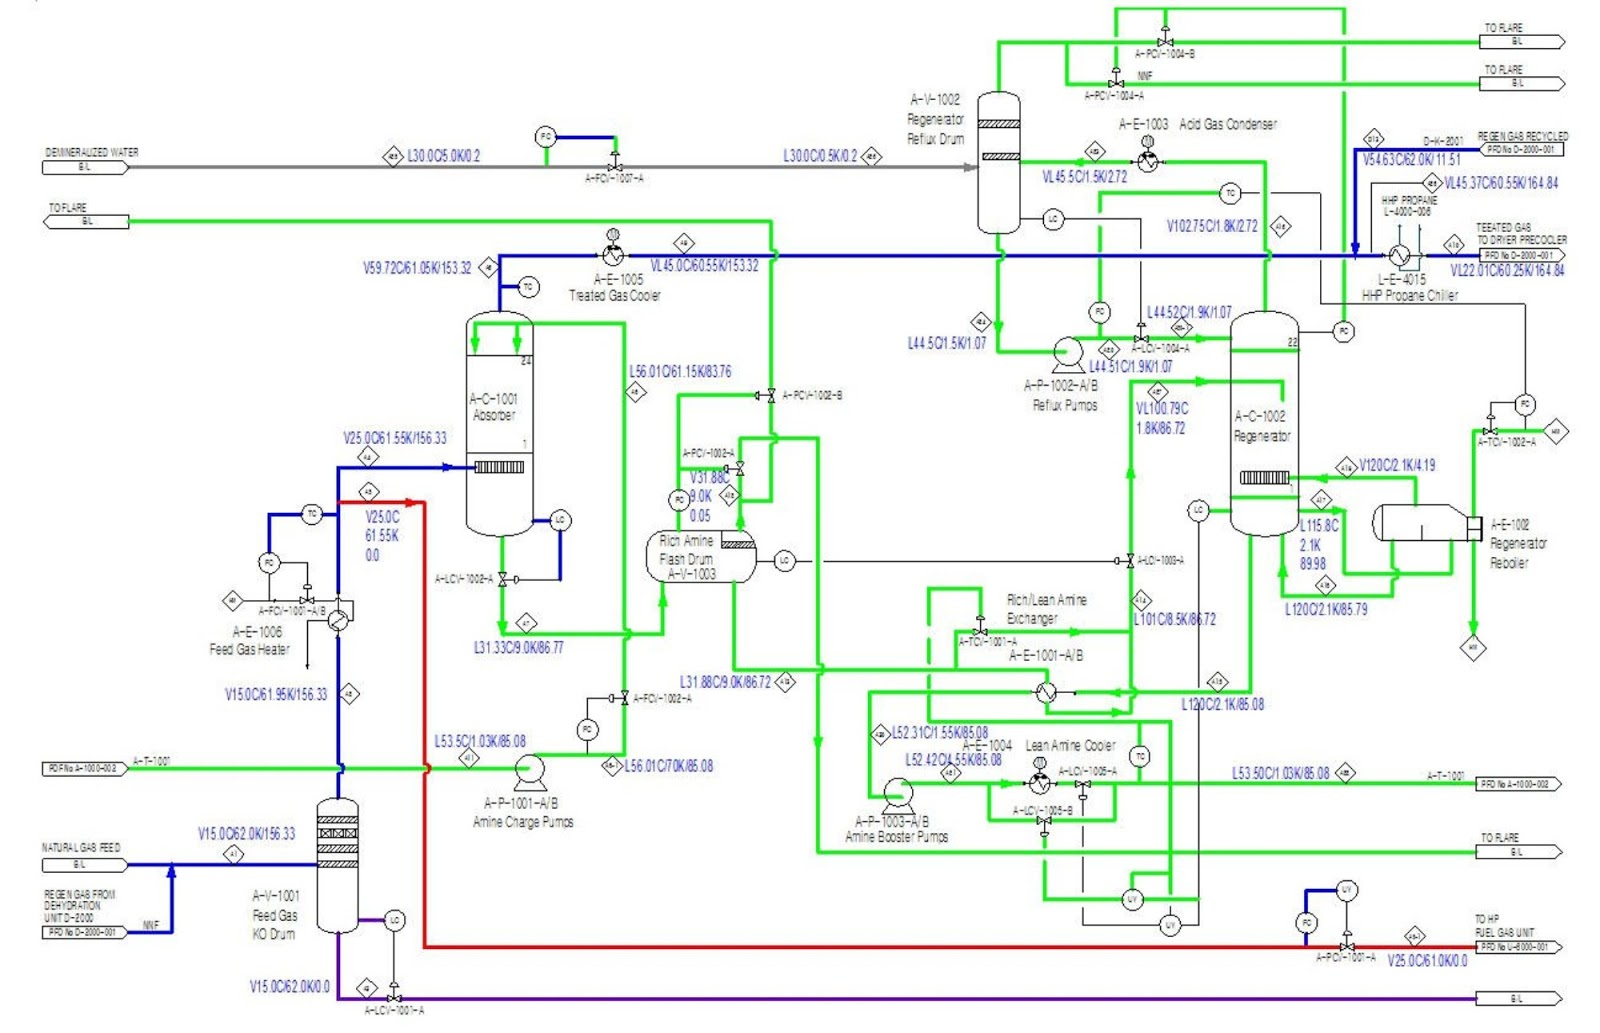 hight resolution of proces flow diagram lng plant